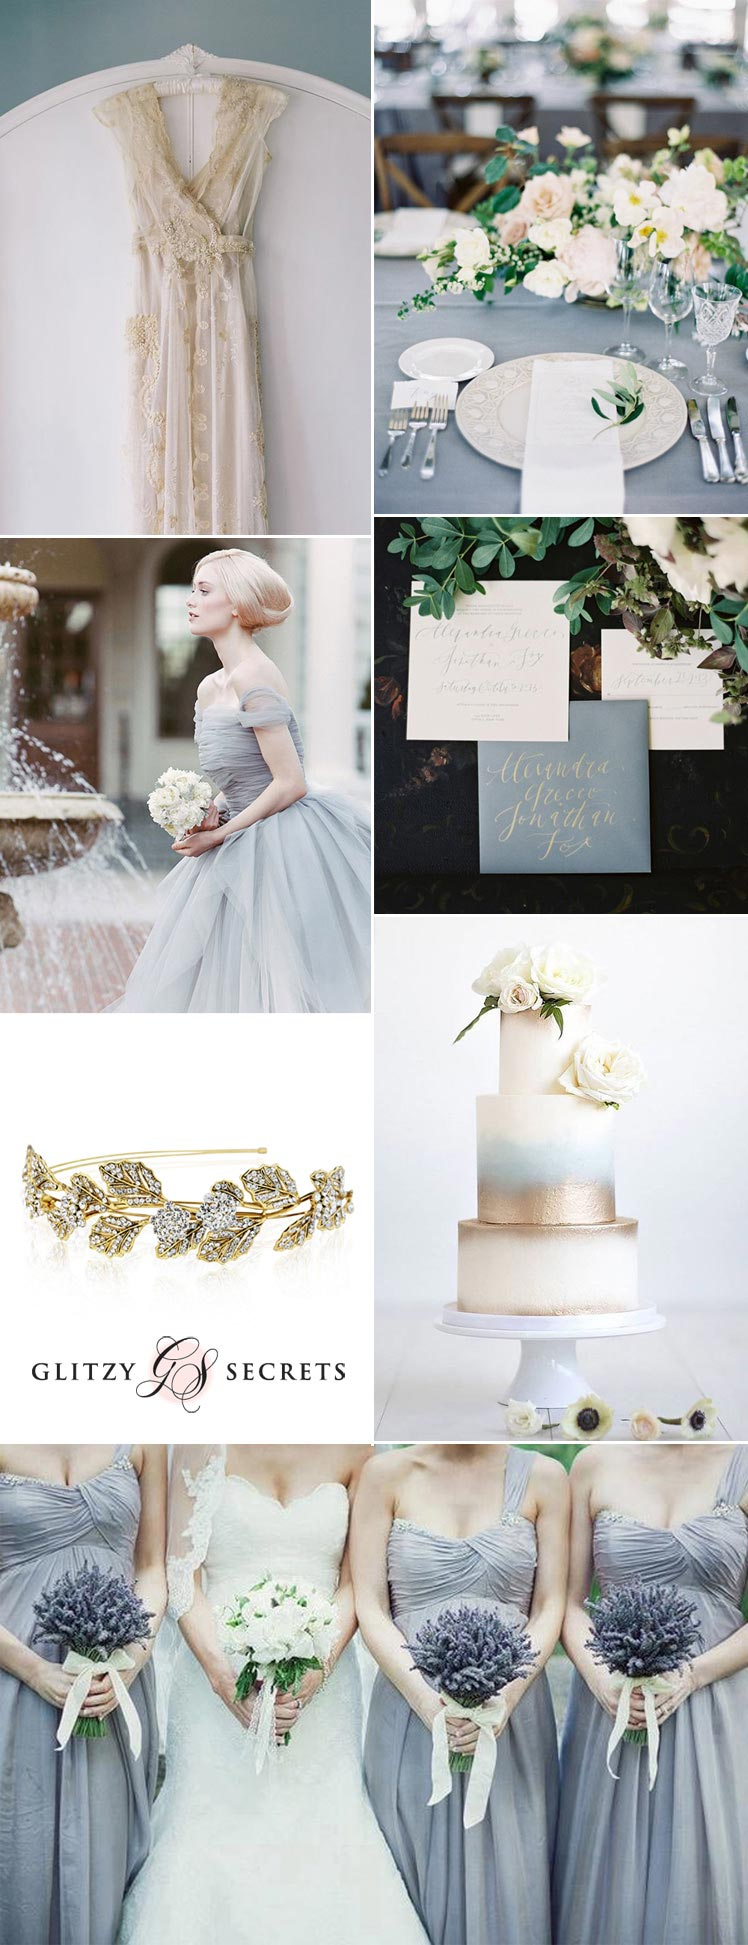 dusky blue and antique gold wedding inspiration